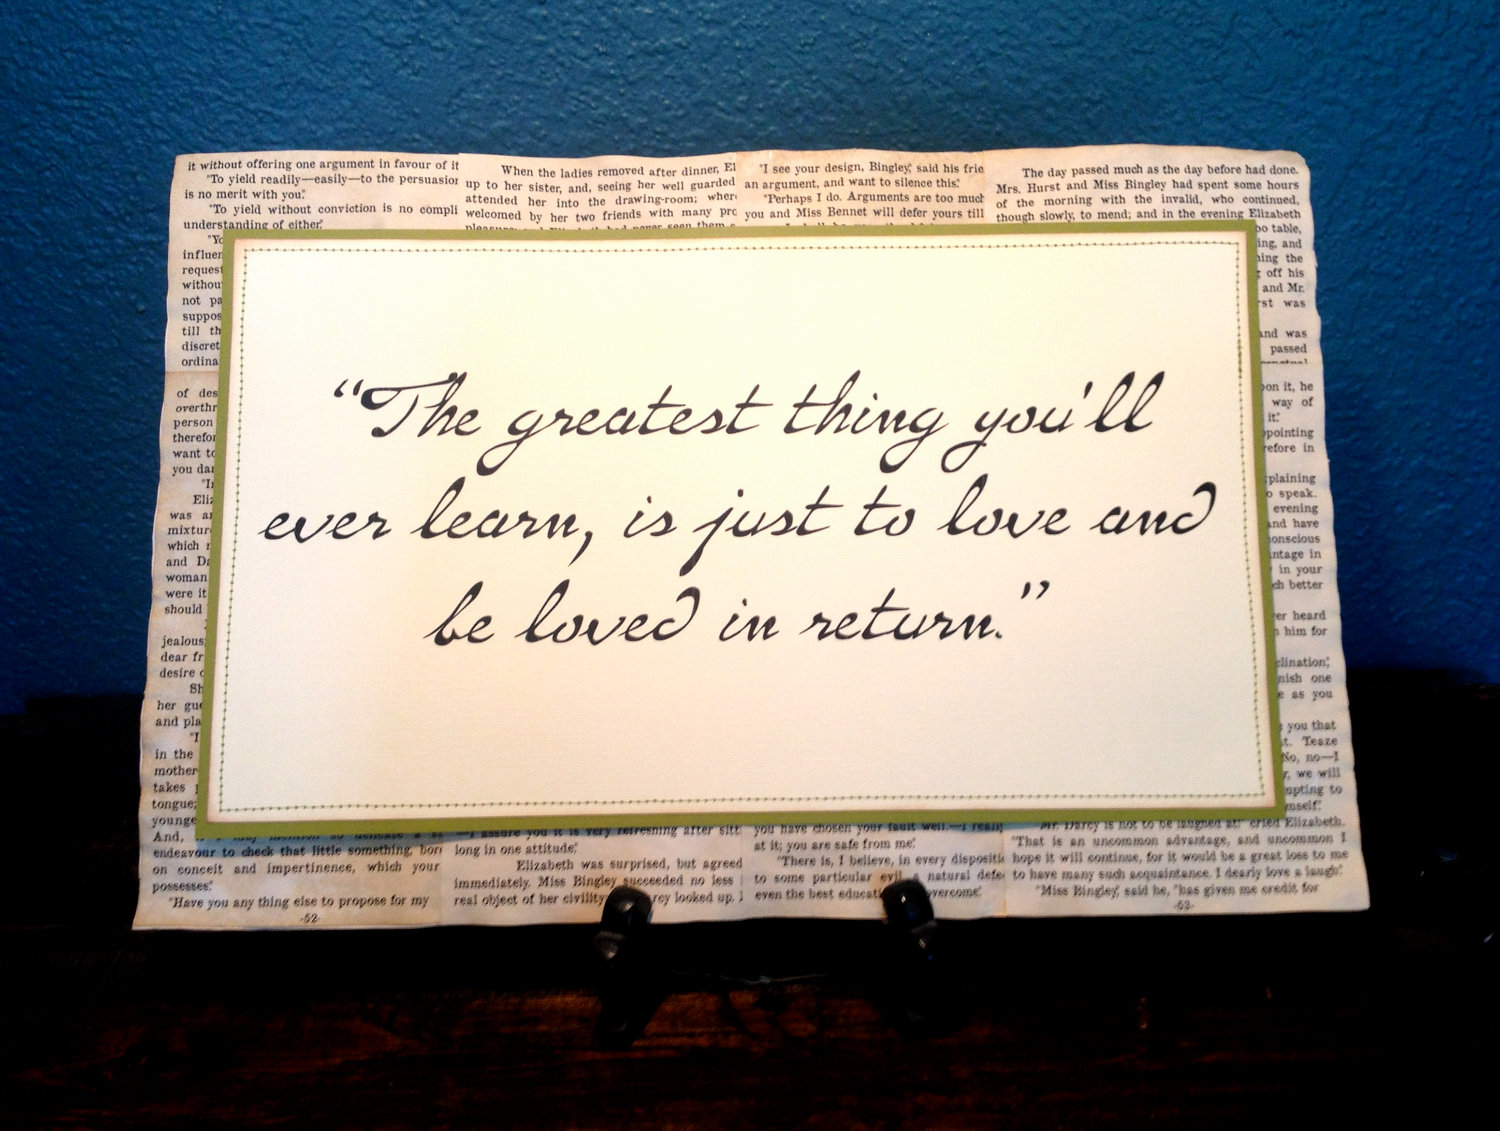 Vintage Love Quotes For Him : Vintage Love Quotes. QuotesGram